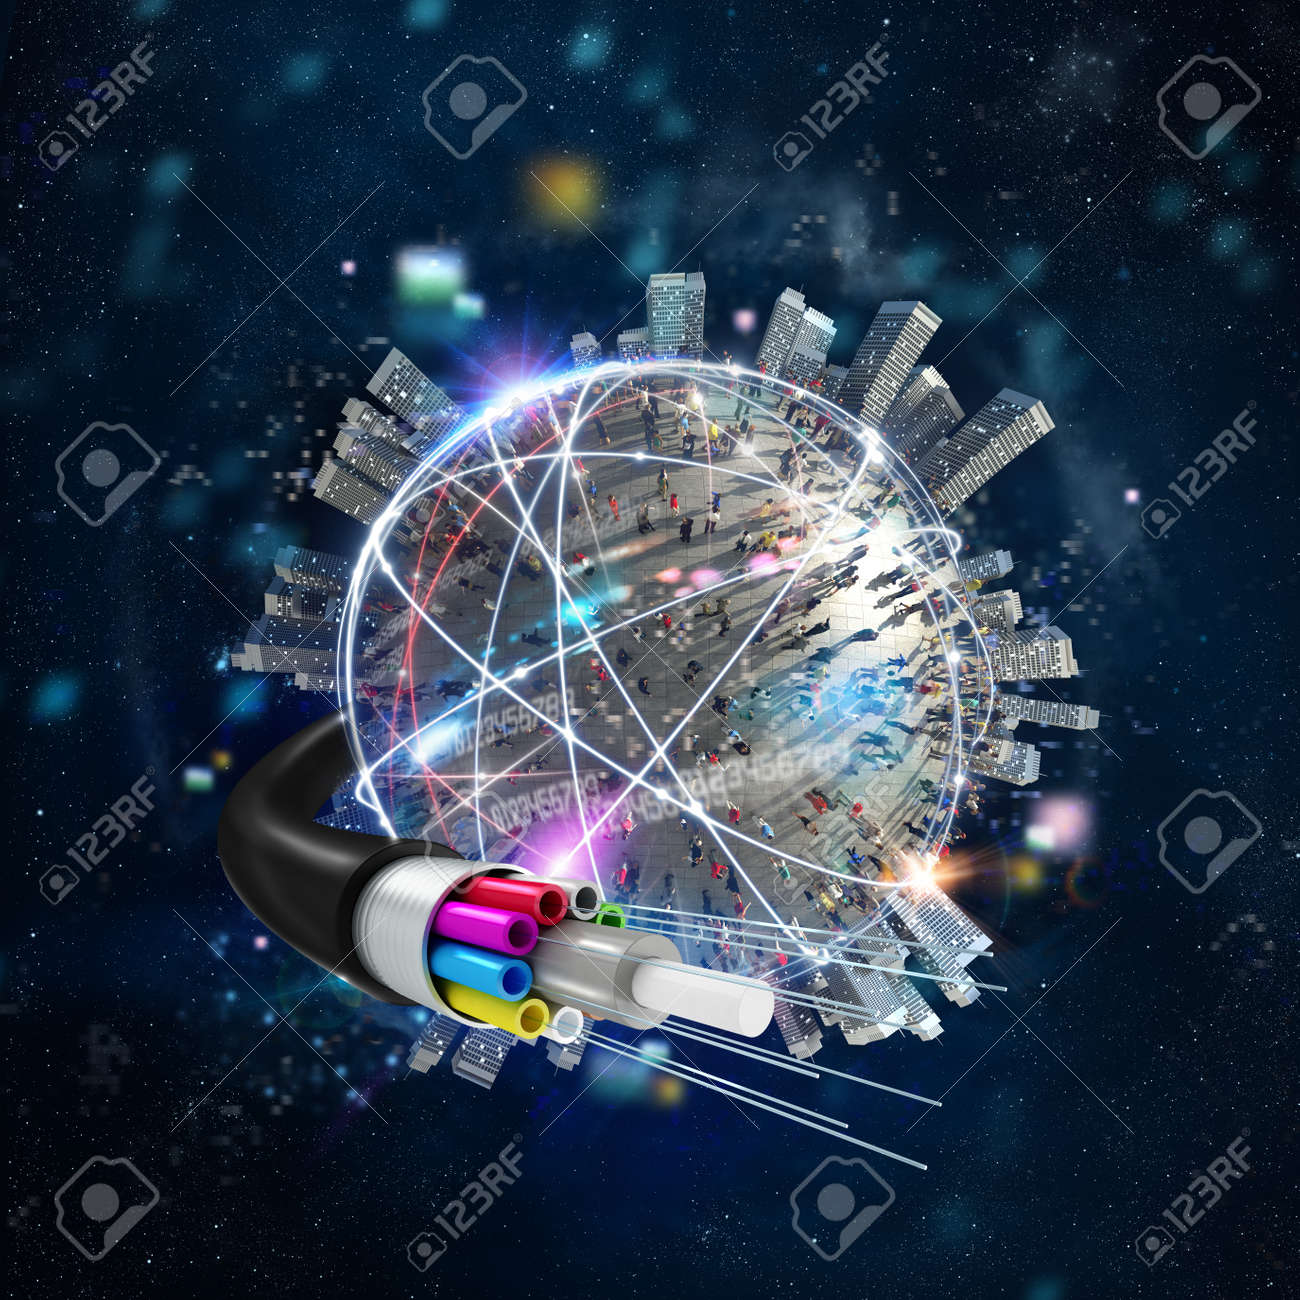 Fast internet worldwide connection with the optical fiber - 93740731